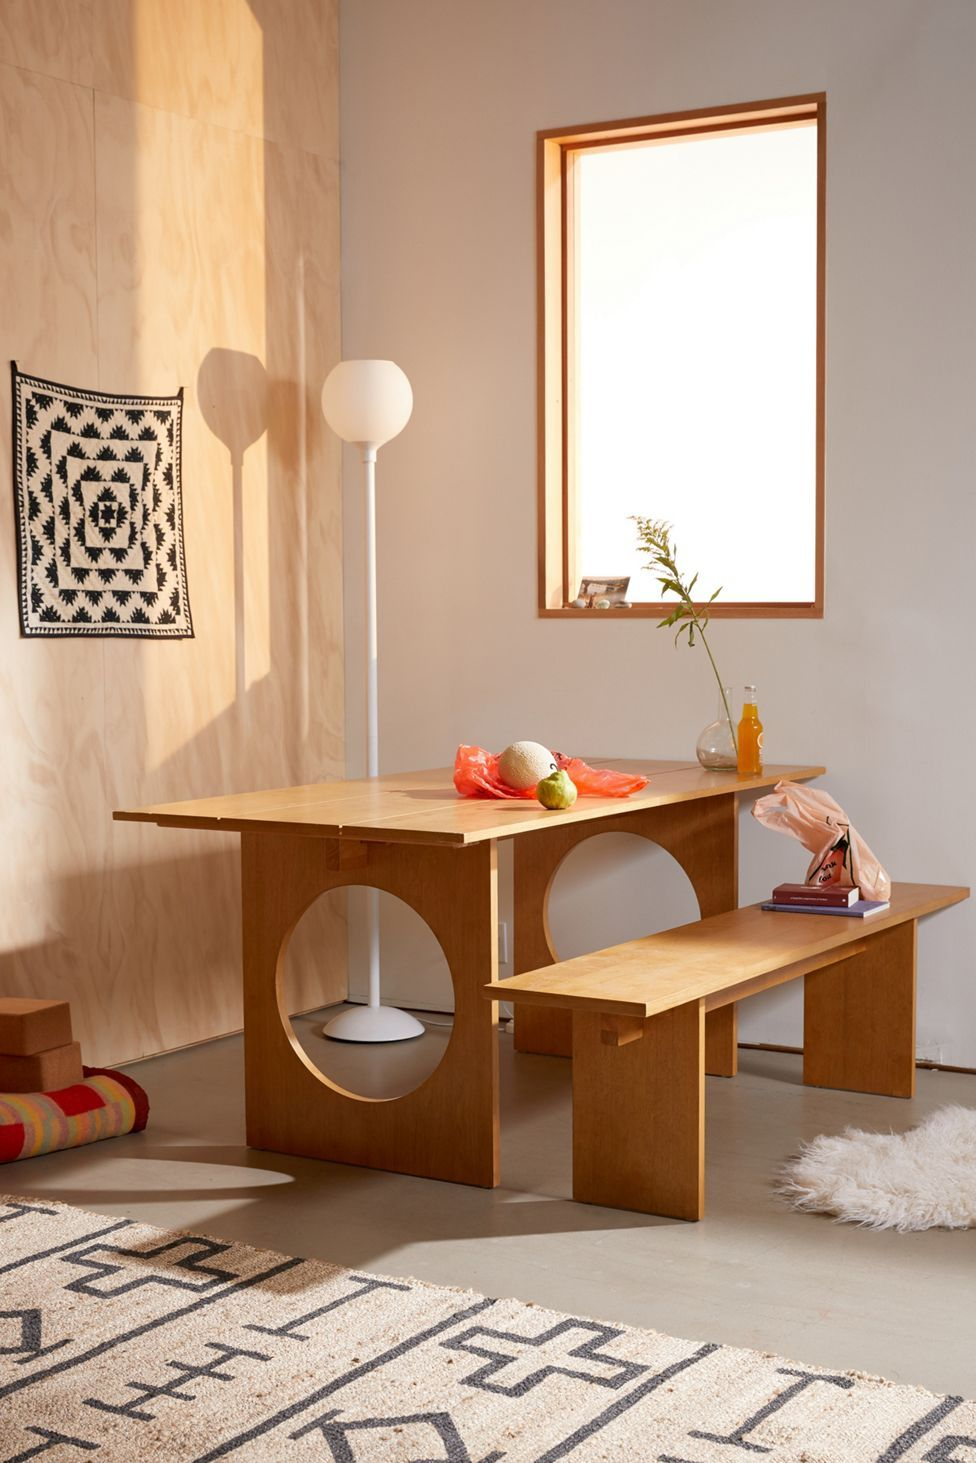 Astrid Dining Table Urban Outfitters Urban Outfitters Furniture Furniture Dining Table [ 1463 x 976 Pixel ]